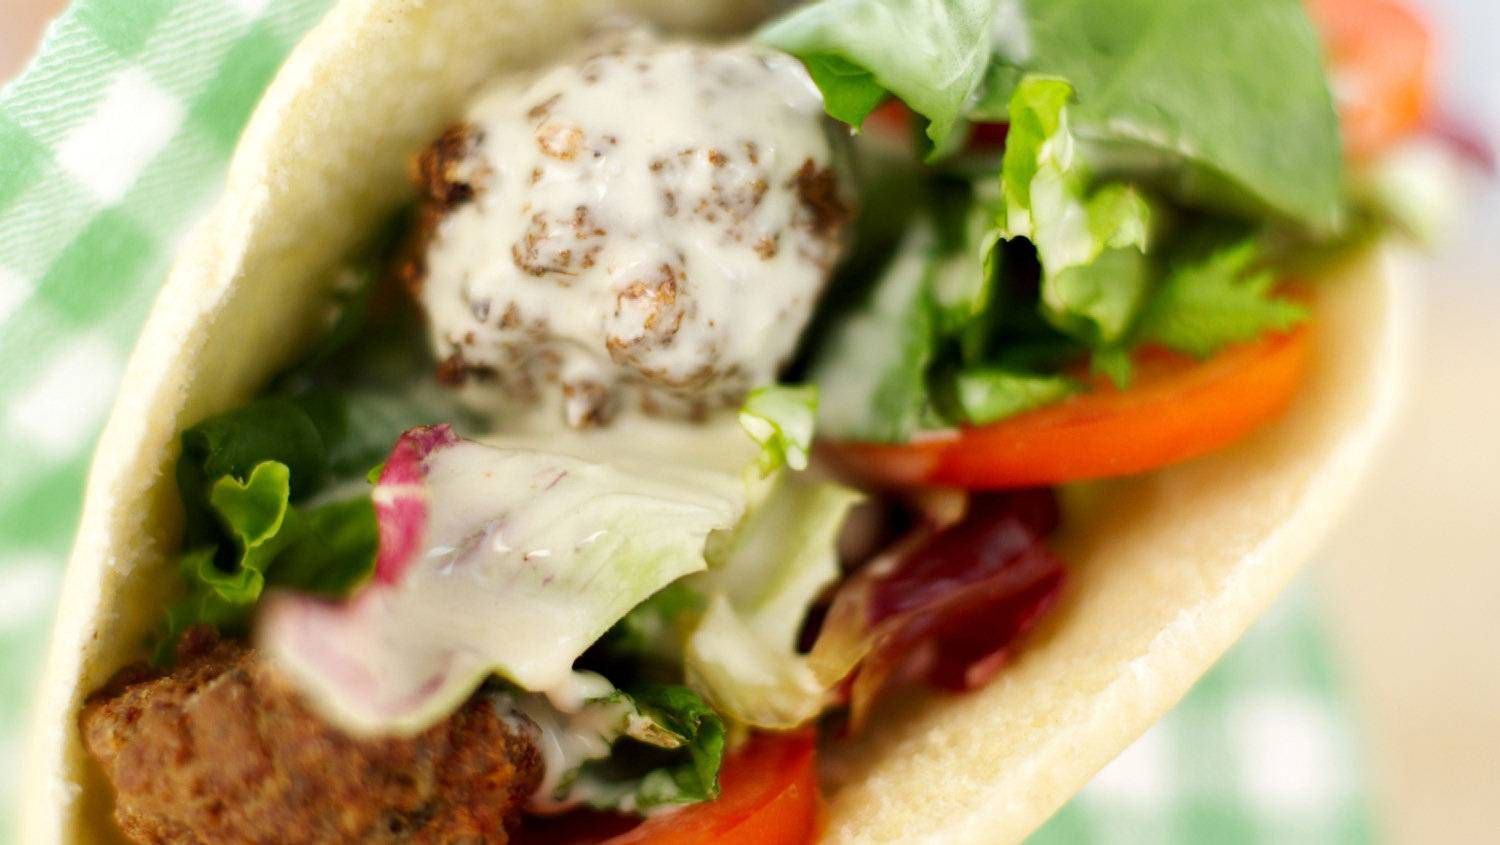 I love falafel but are they actually healthy? - The Globe